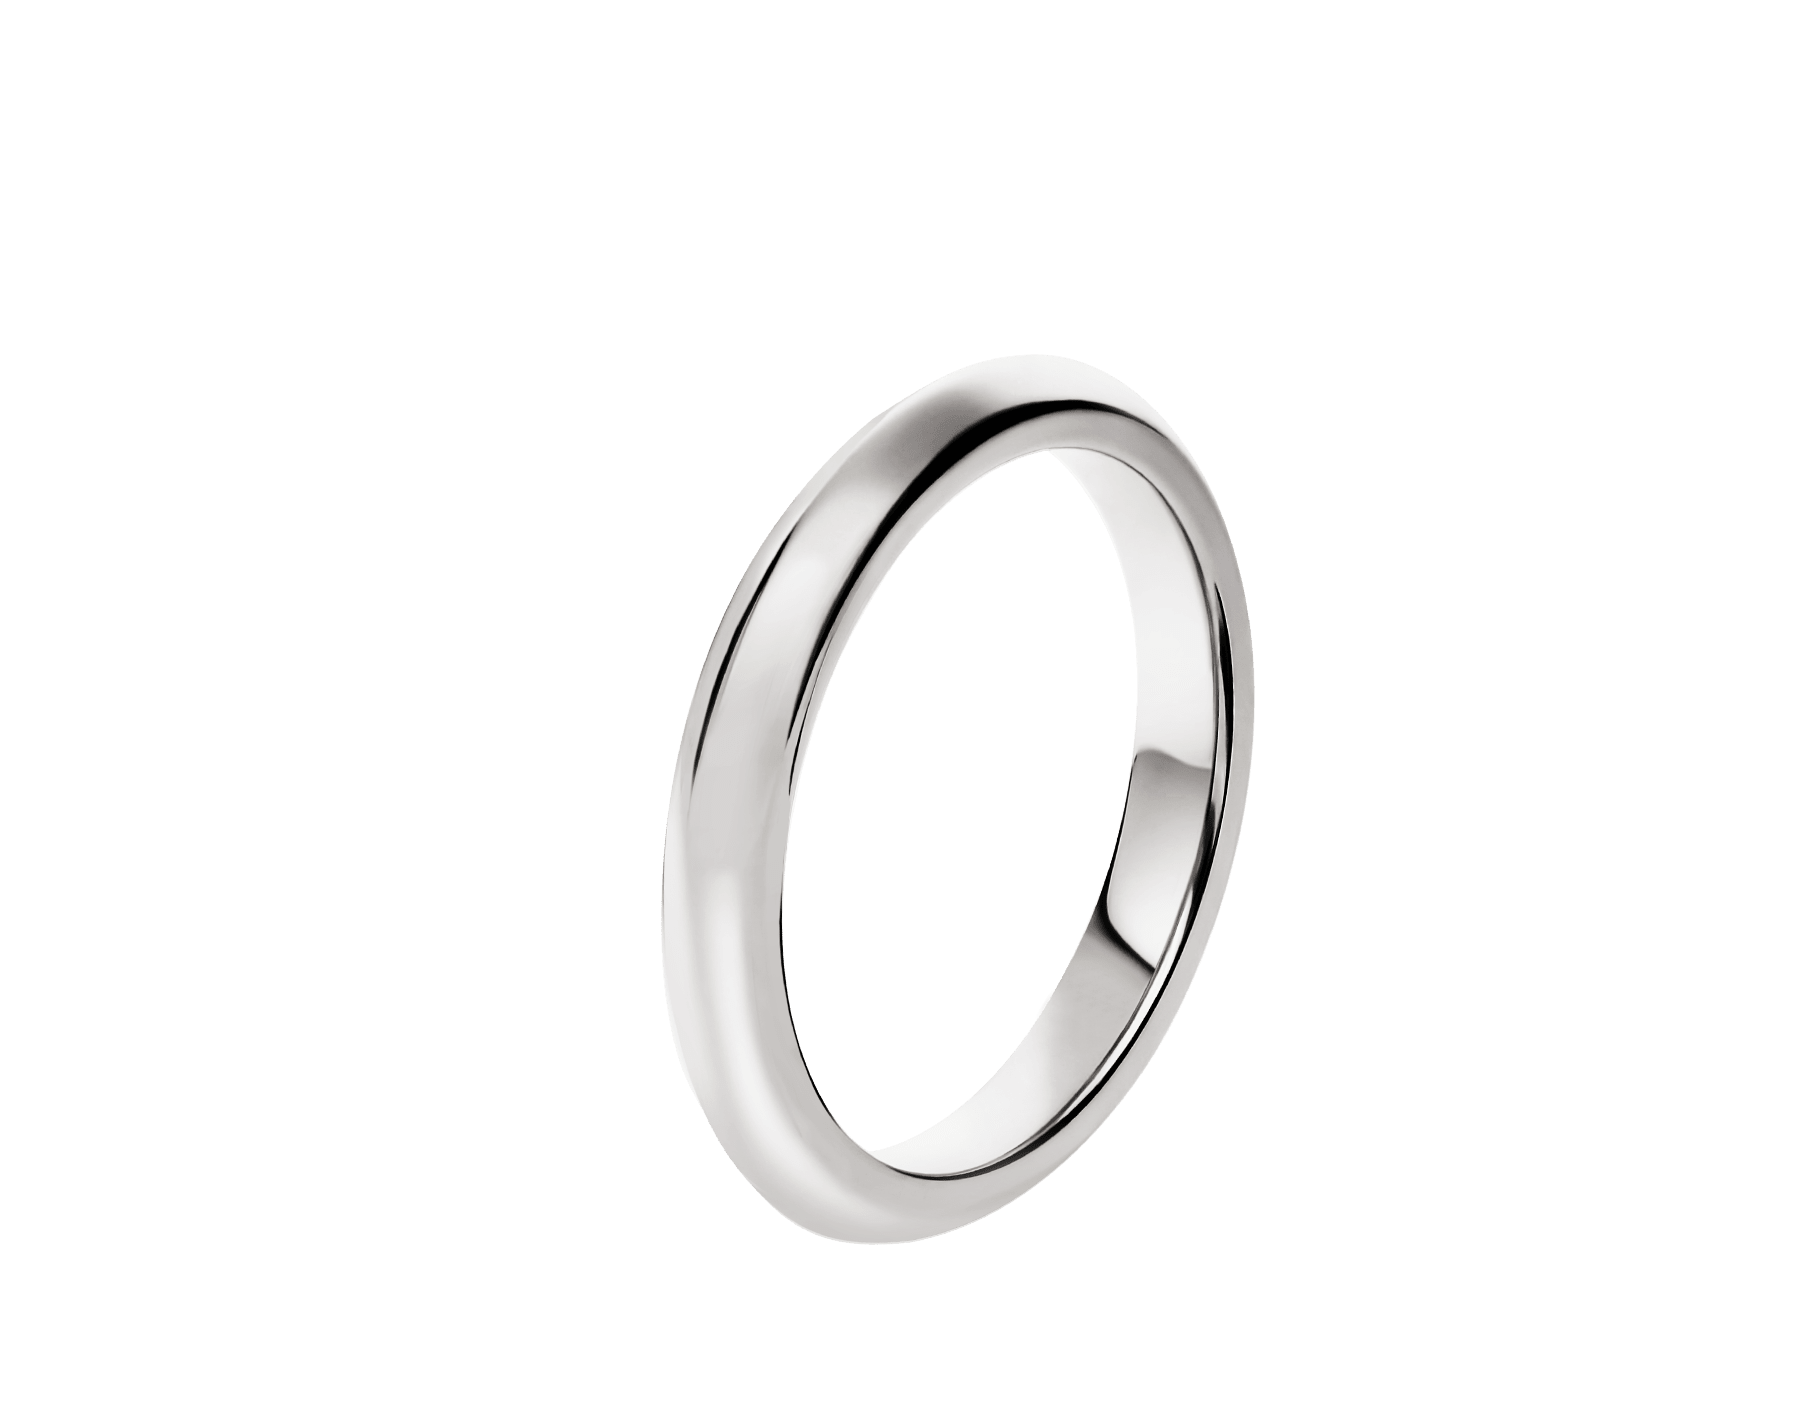 Fedi Wedding Band in platinum AN852823 image 1